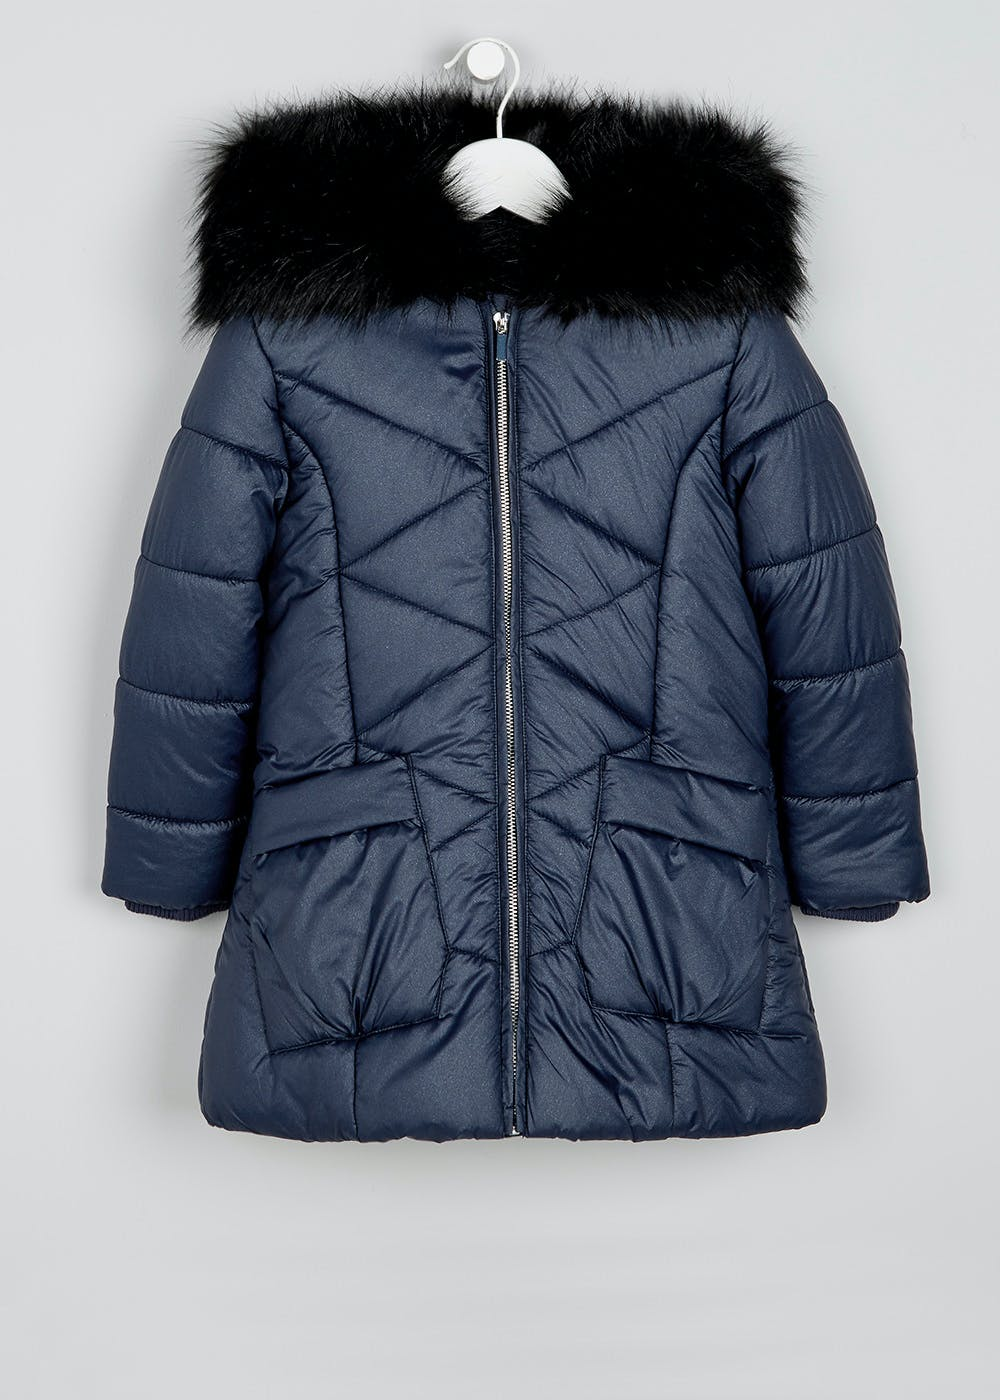 Girls Shimmer Quilted Coat 3 13yrs Navy Matalan